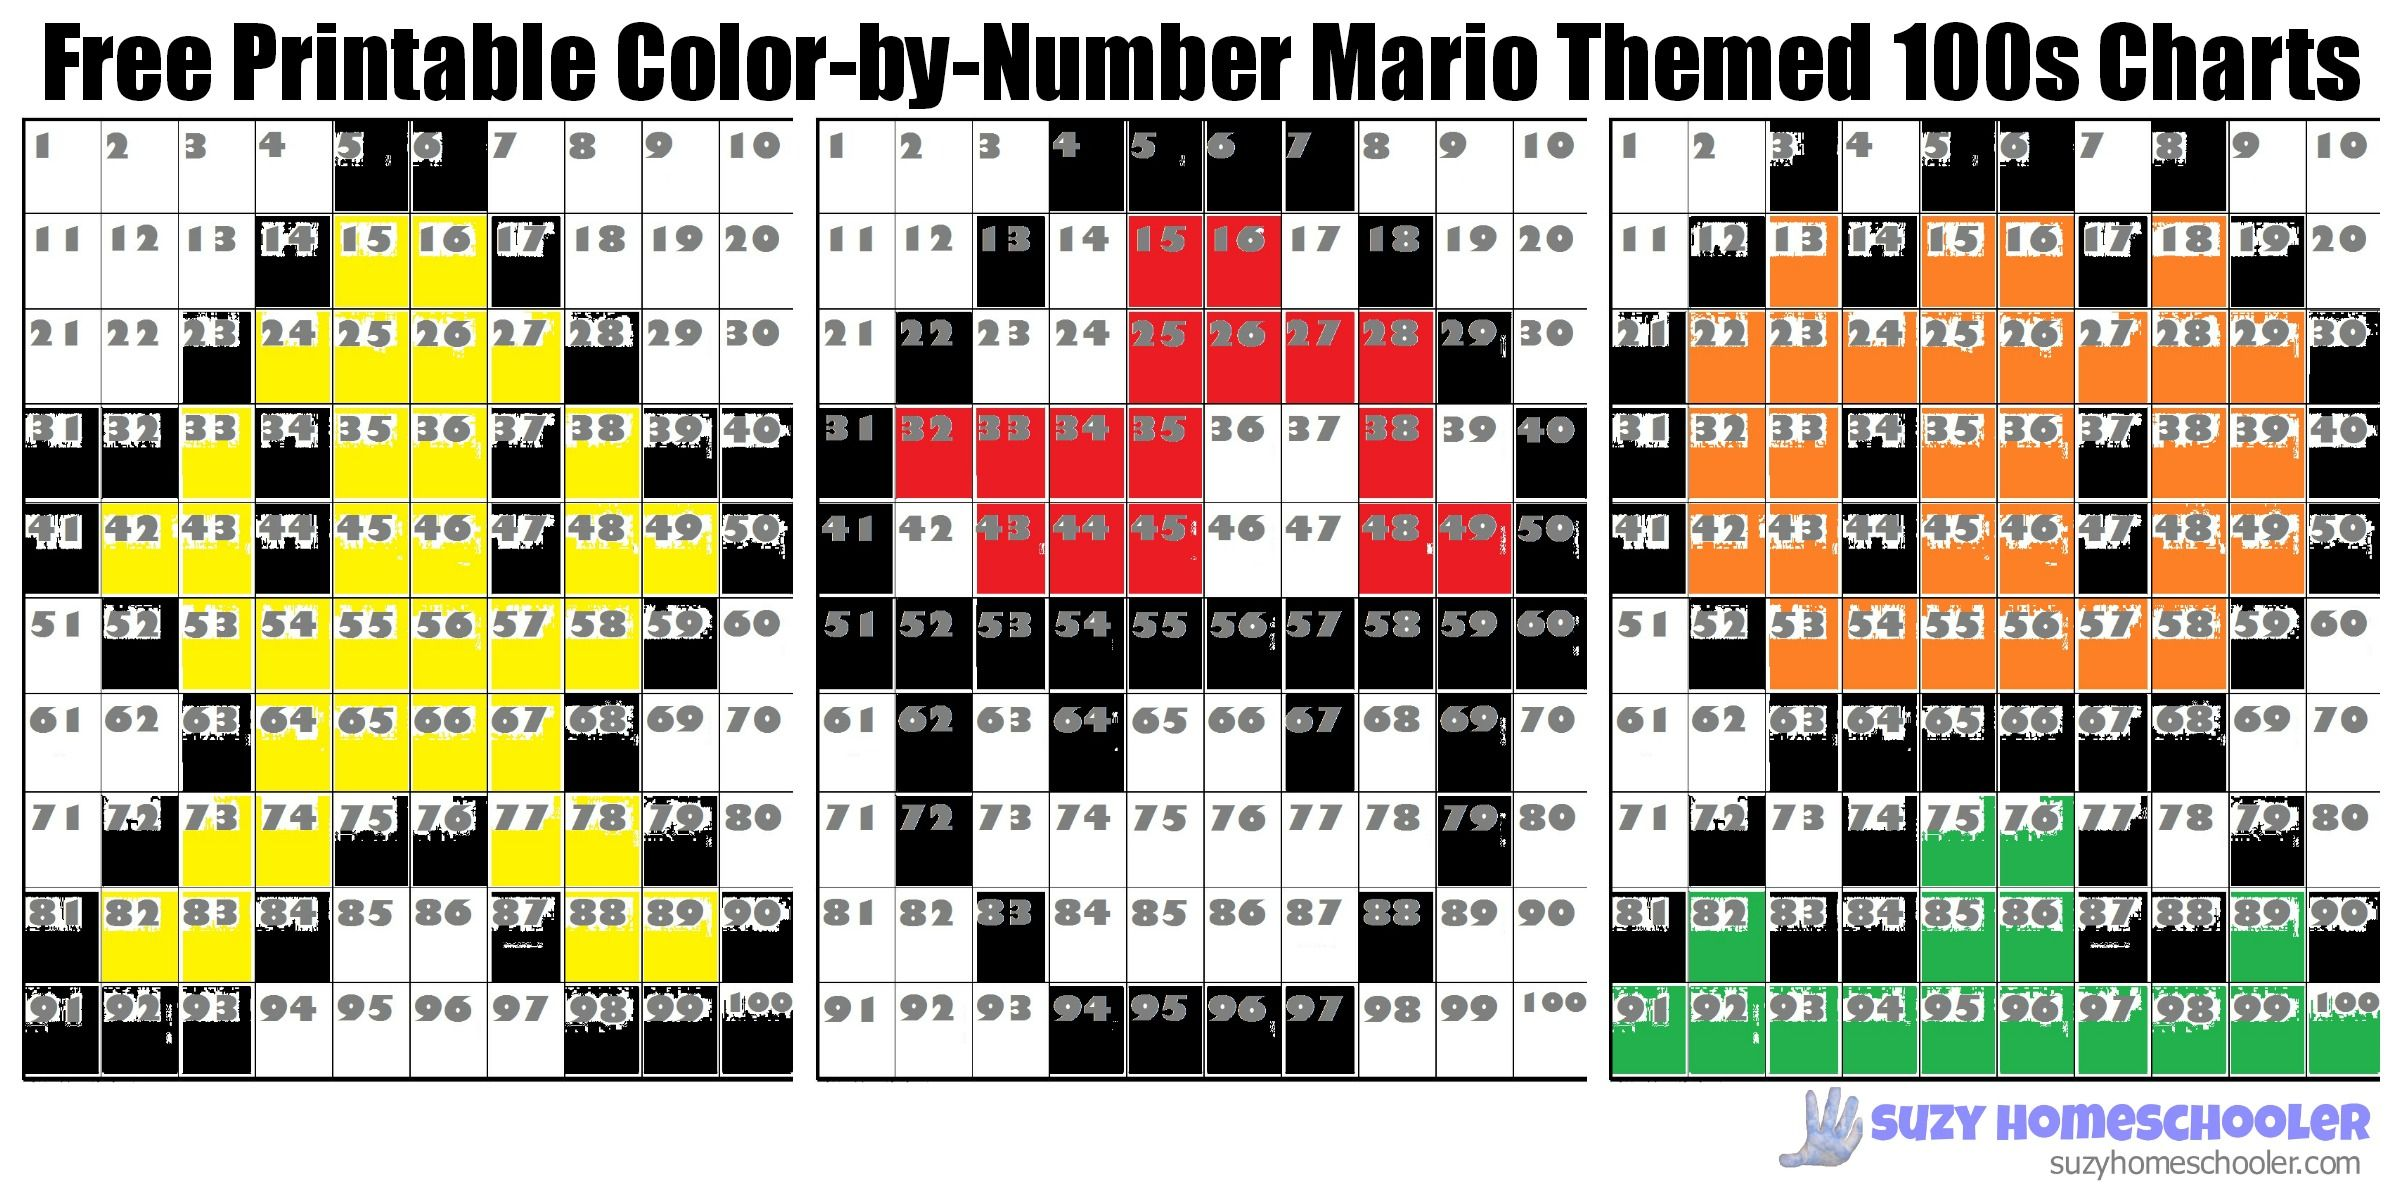 Free Printable Color By Number Mario Themed 100s Charts